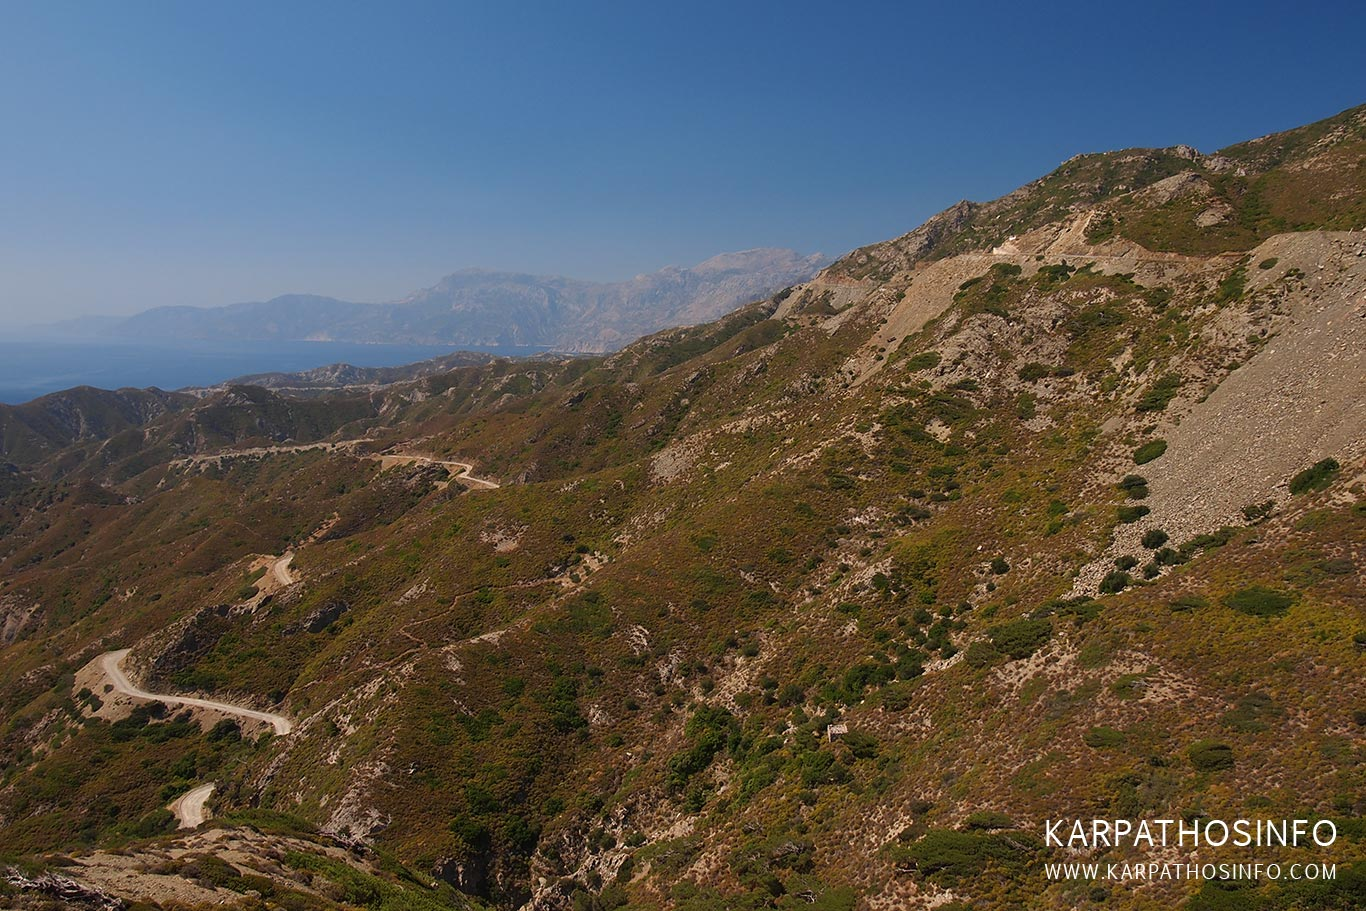 Karpathos by jeep